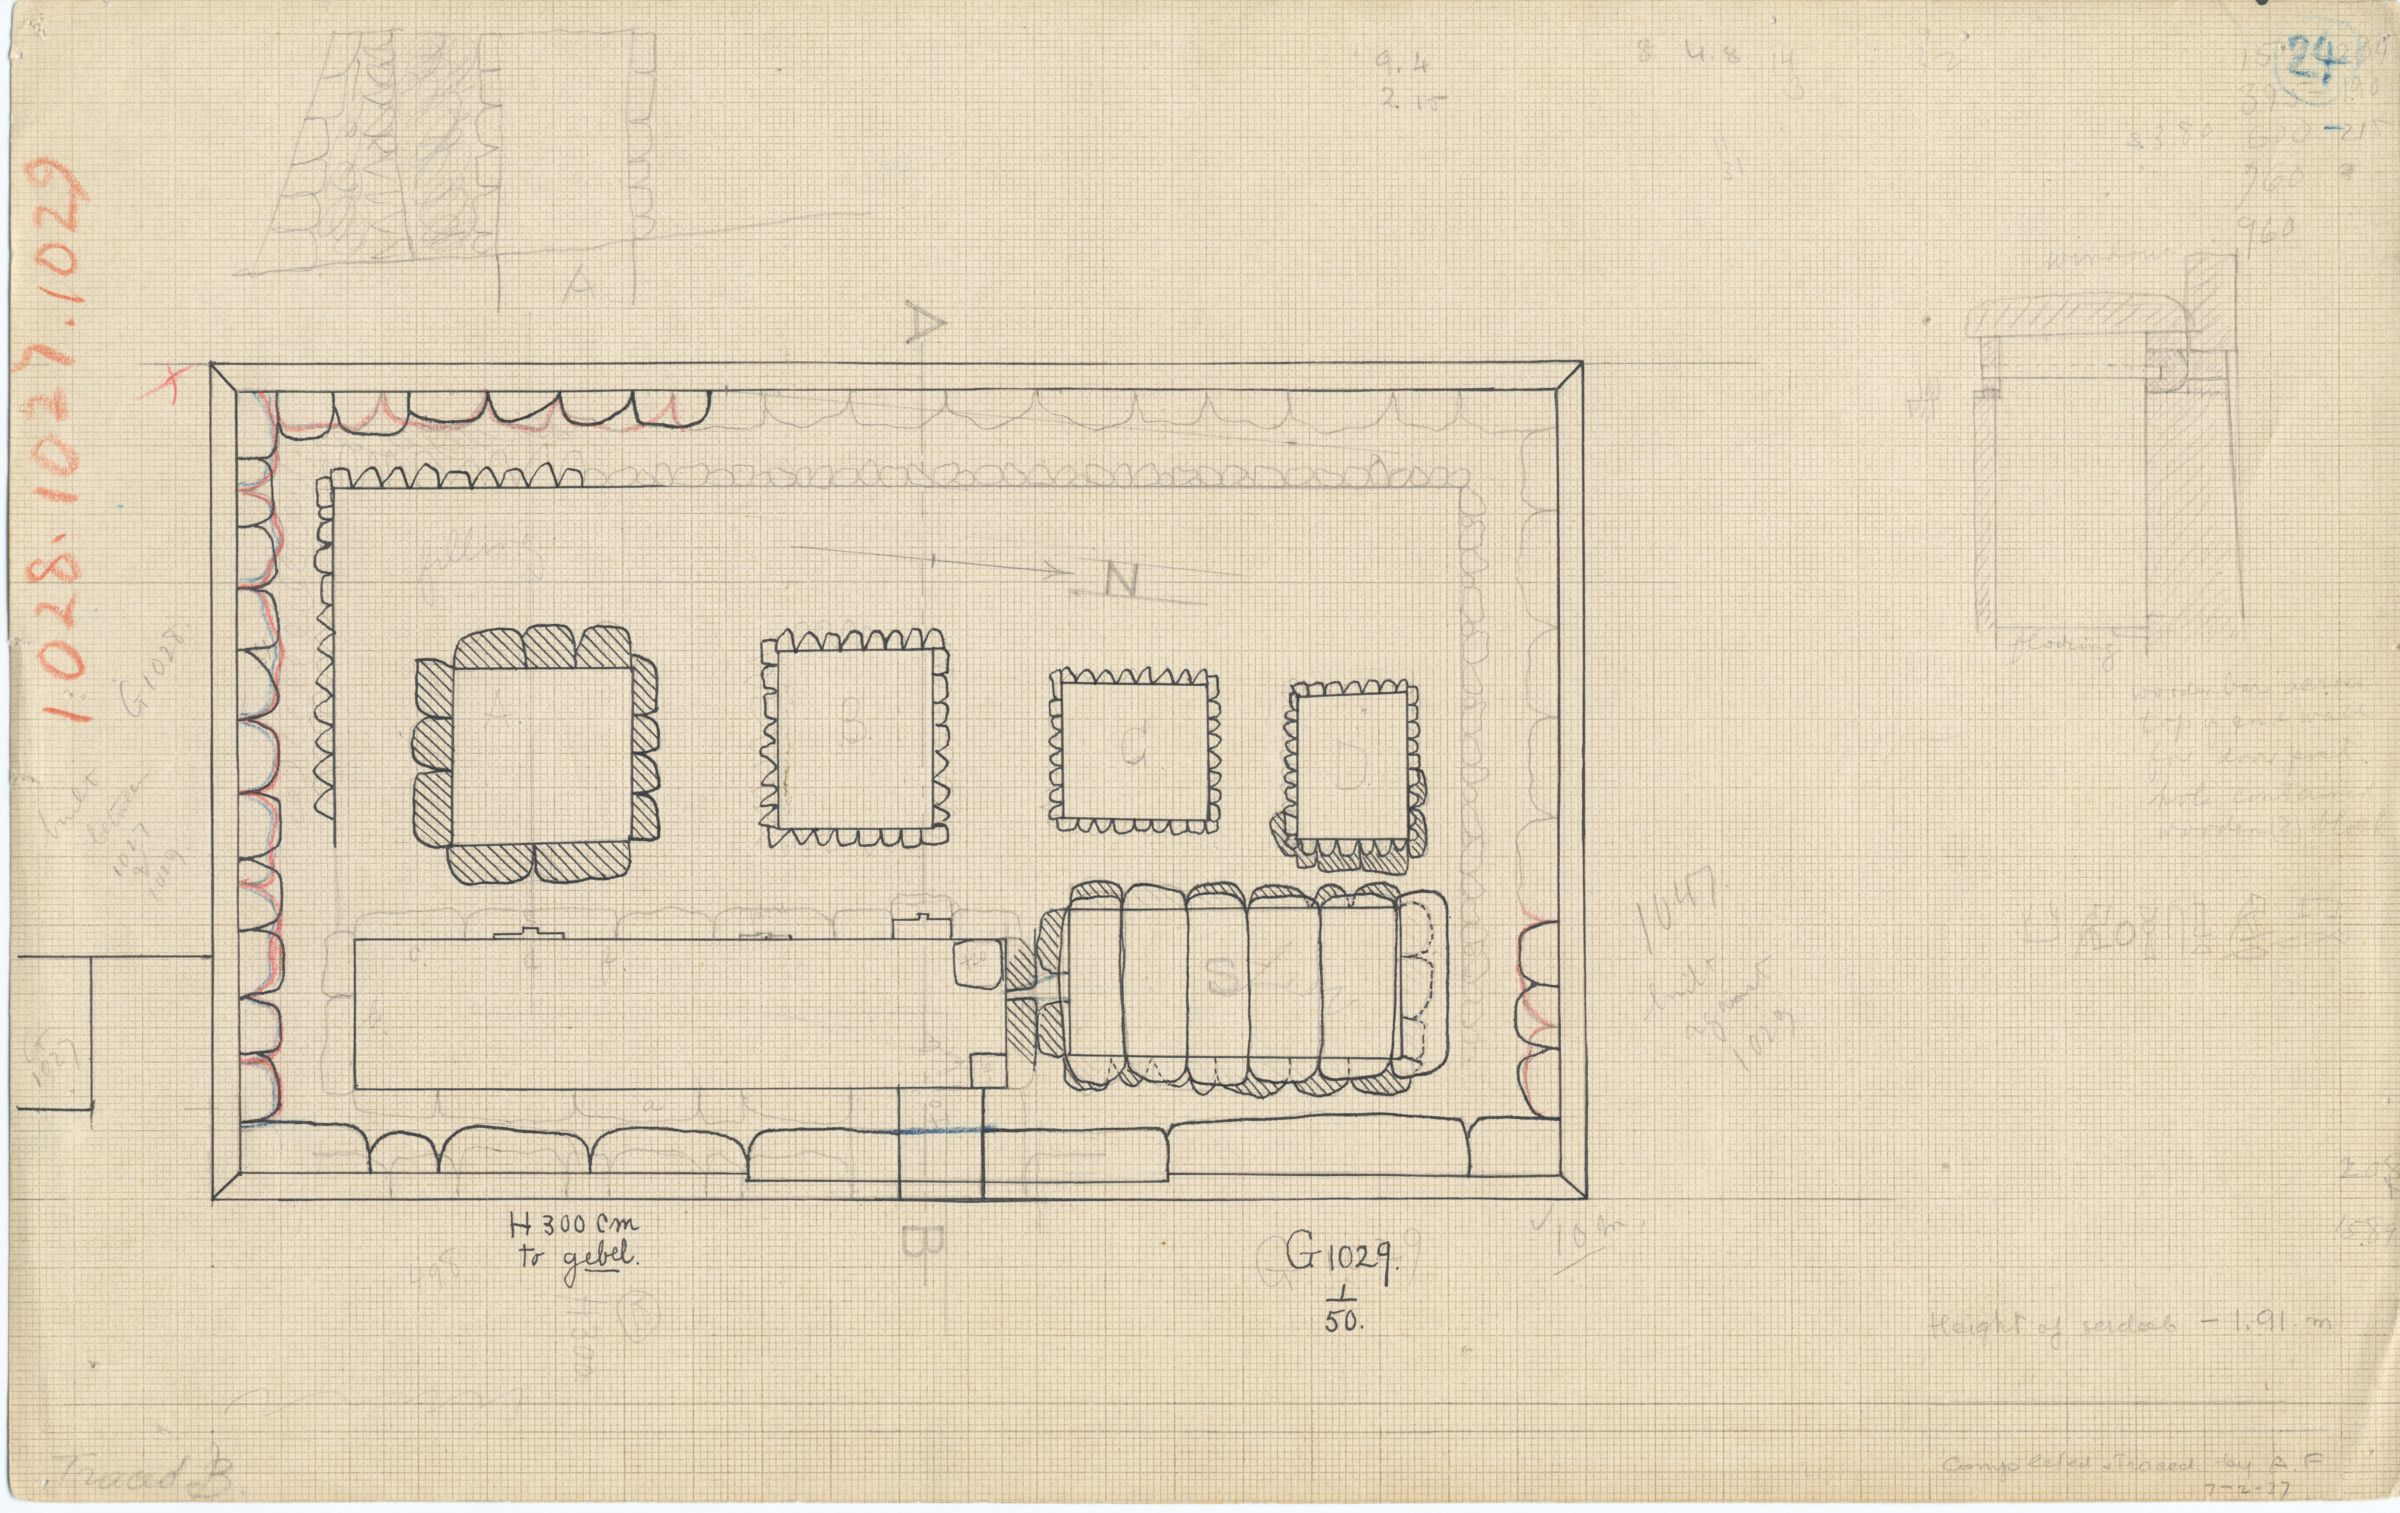 Maps and plans: G 1029, Plan